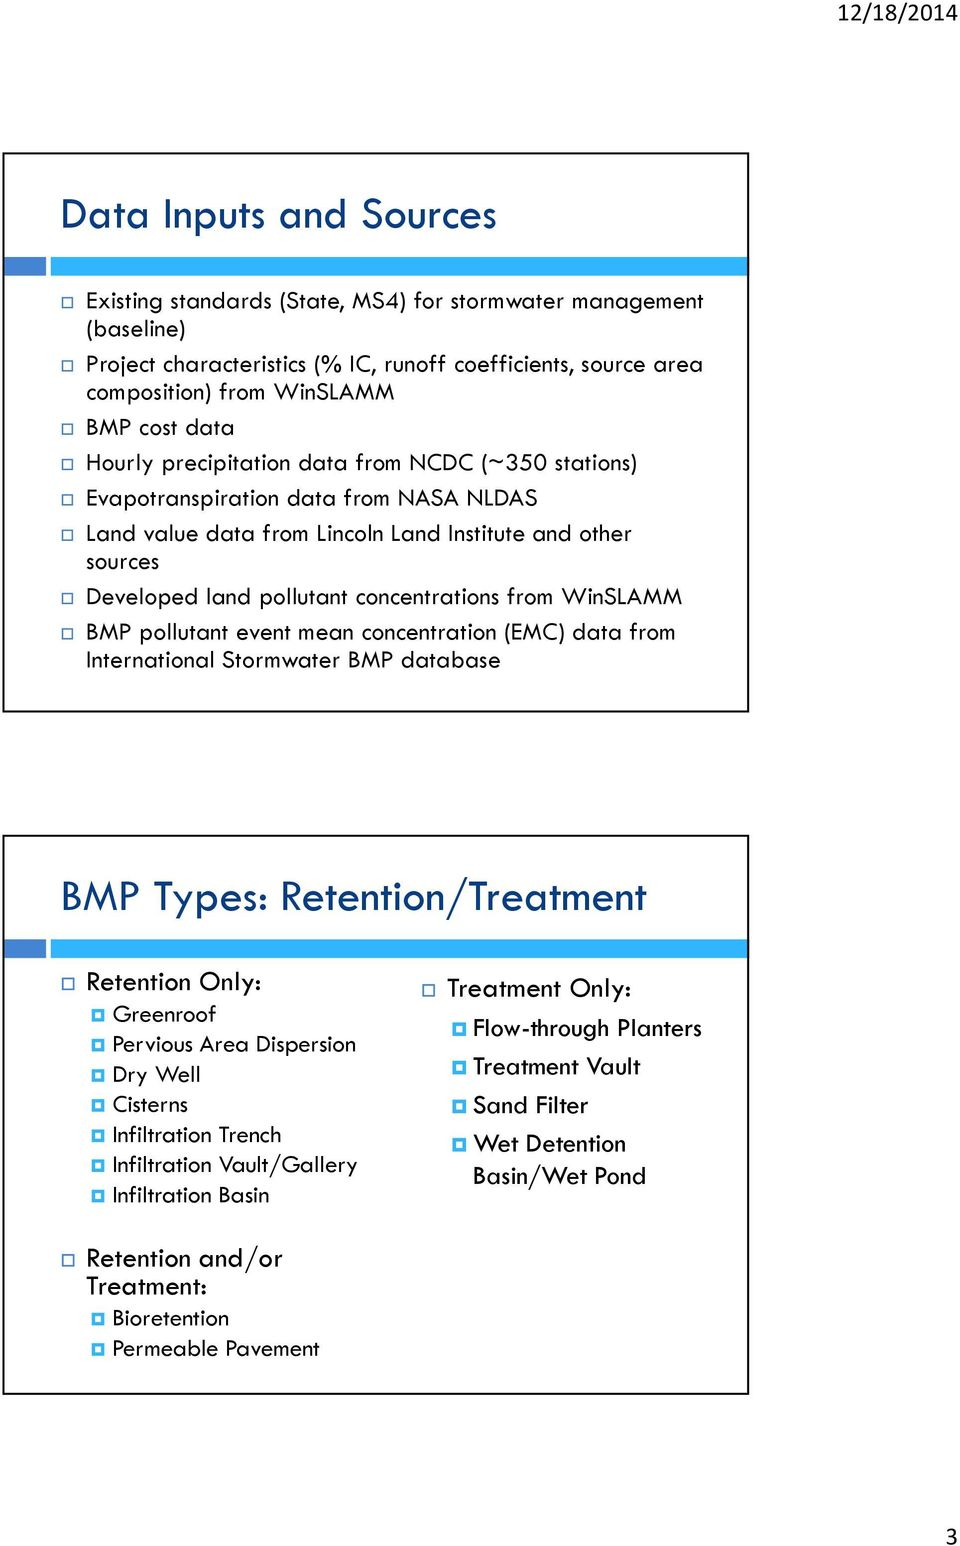 WinSLAMM BMP pollutant event mean concentration (EMC) data from International Stormwater BMP database BMP Types: Retention/Treatment Retention Only: Greenroof Pervious Area Dispersion Dry Well